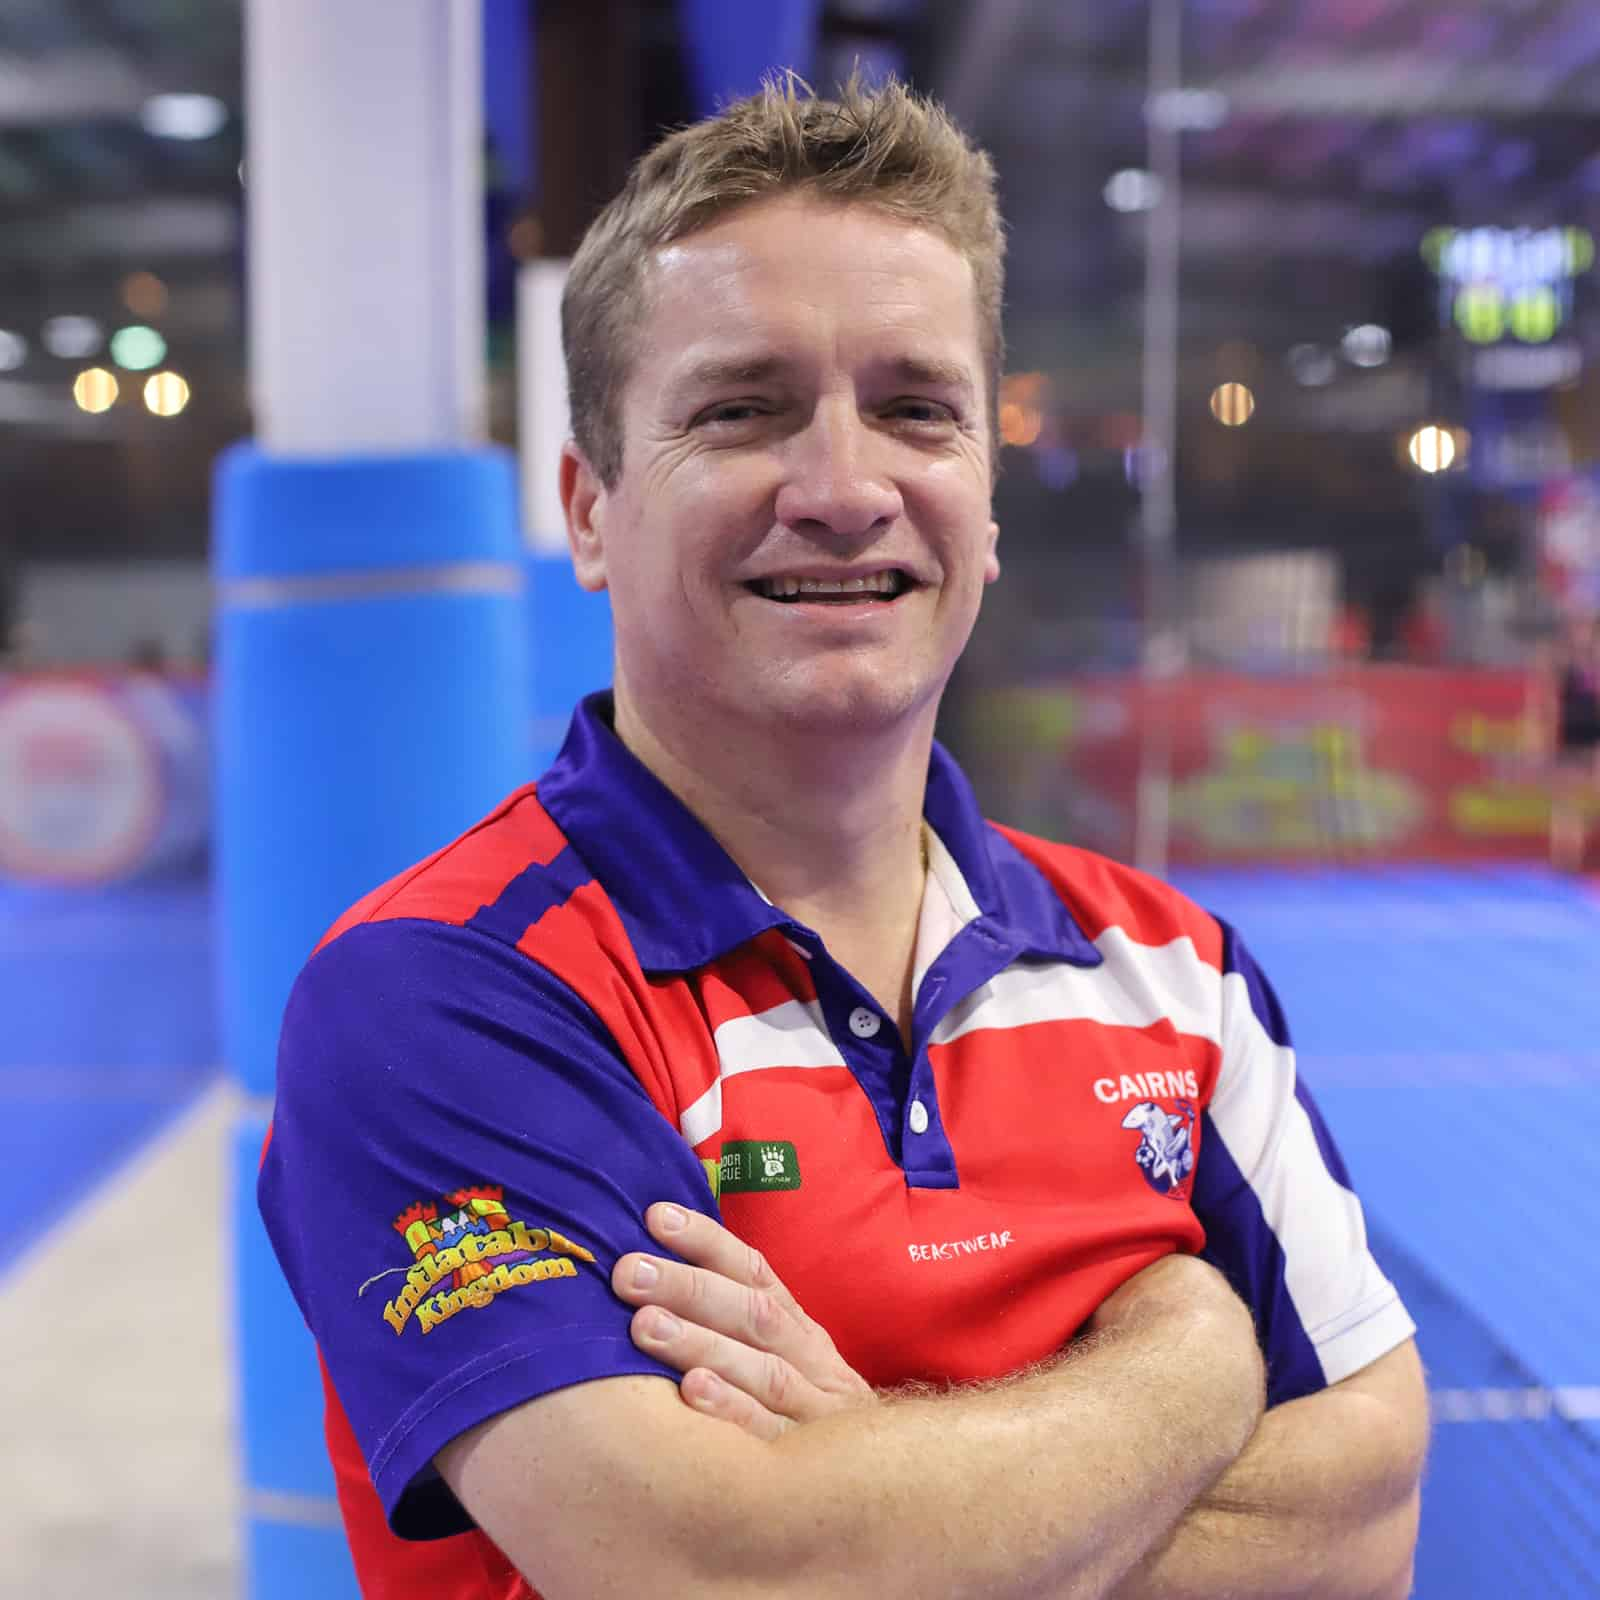 Cairns Indoor Sports - Lachlan Owner and Director